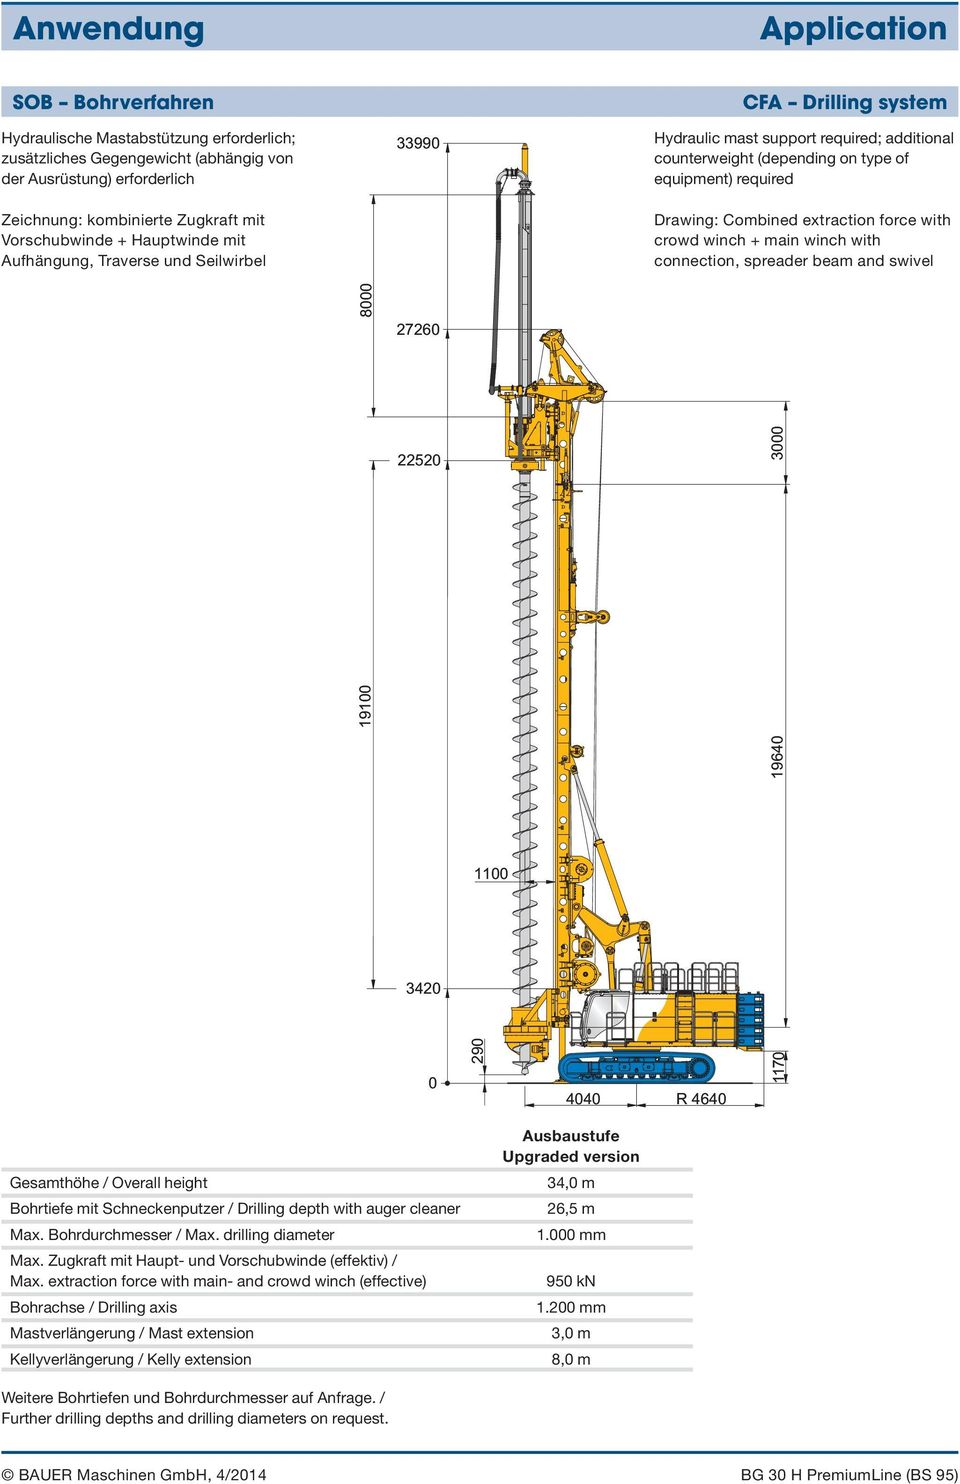 Hydraulic mast support required; additional counterweight (depending on type of equipment) required 33990 Drawing: Combined extraction force with crowd winch + main winch with connection, spreader